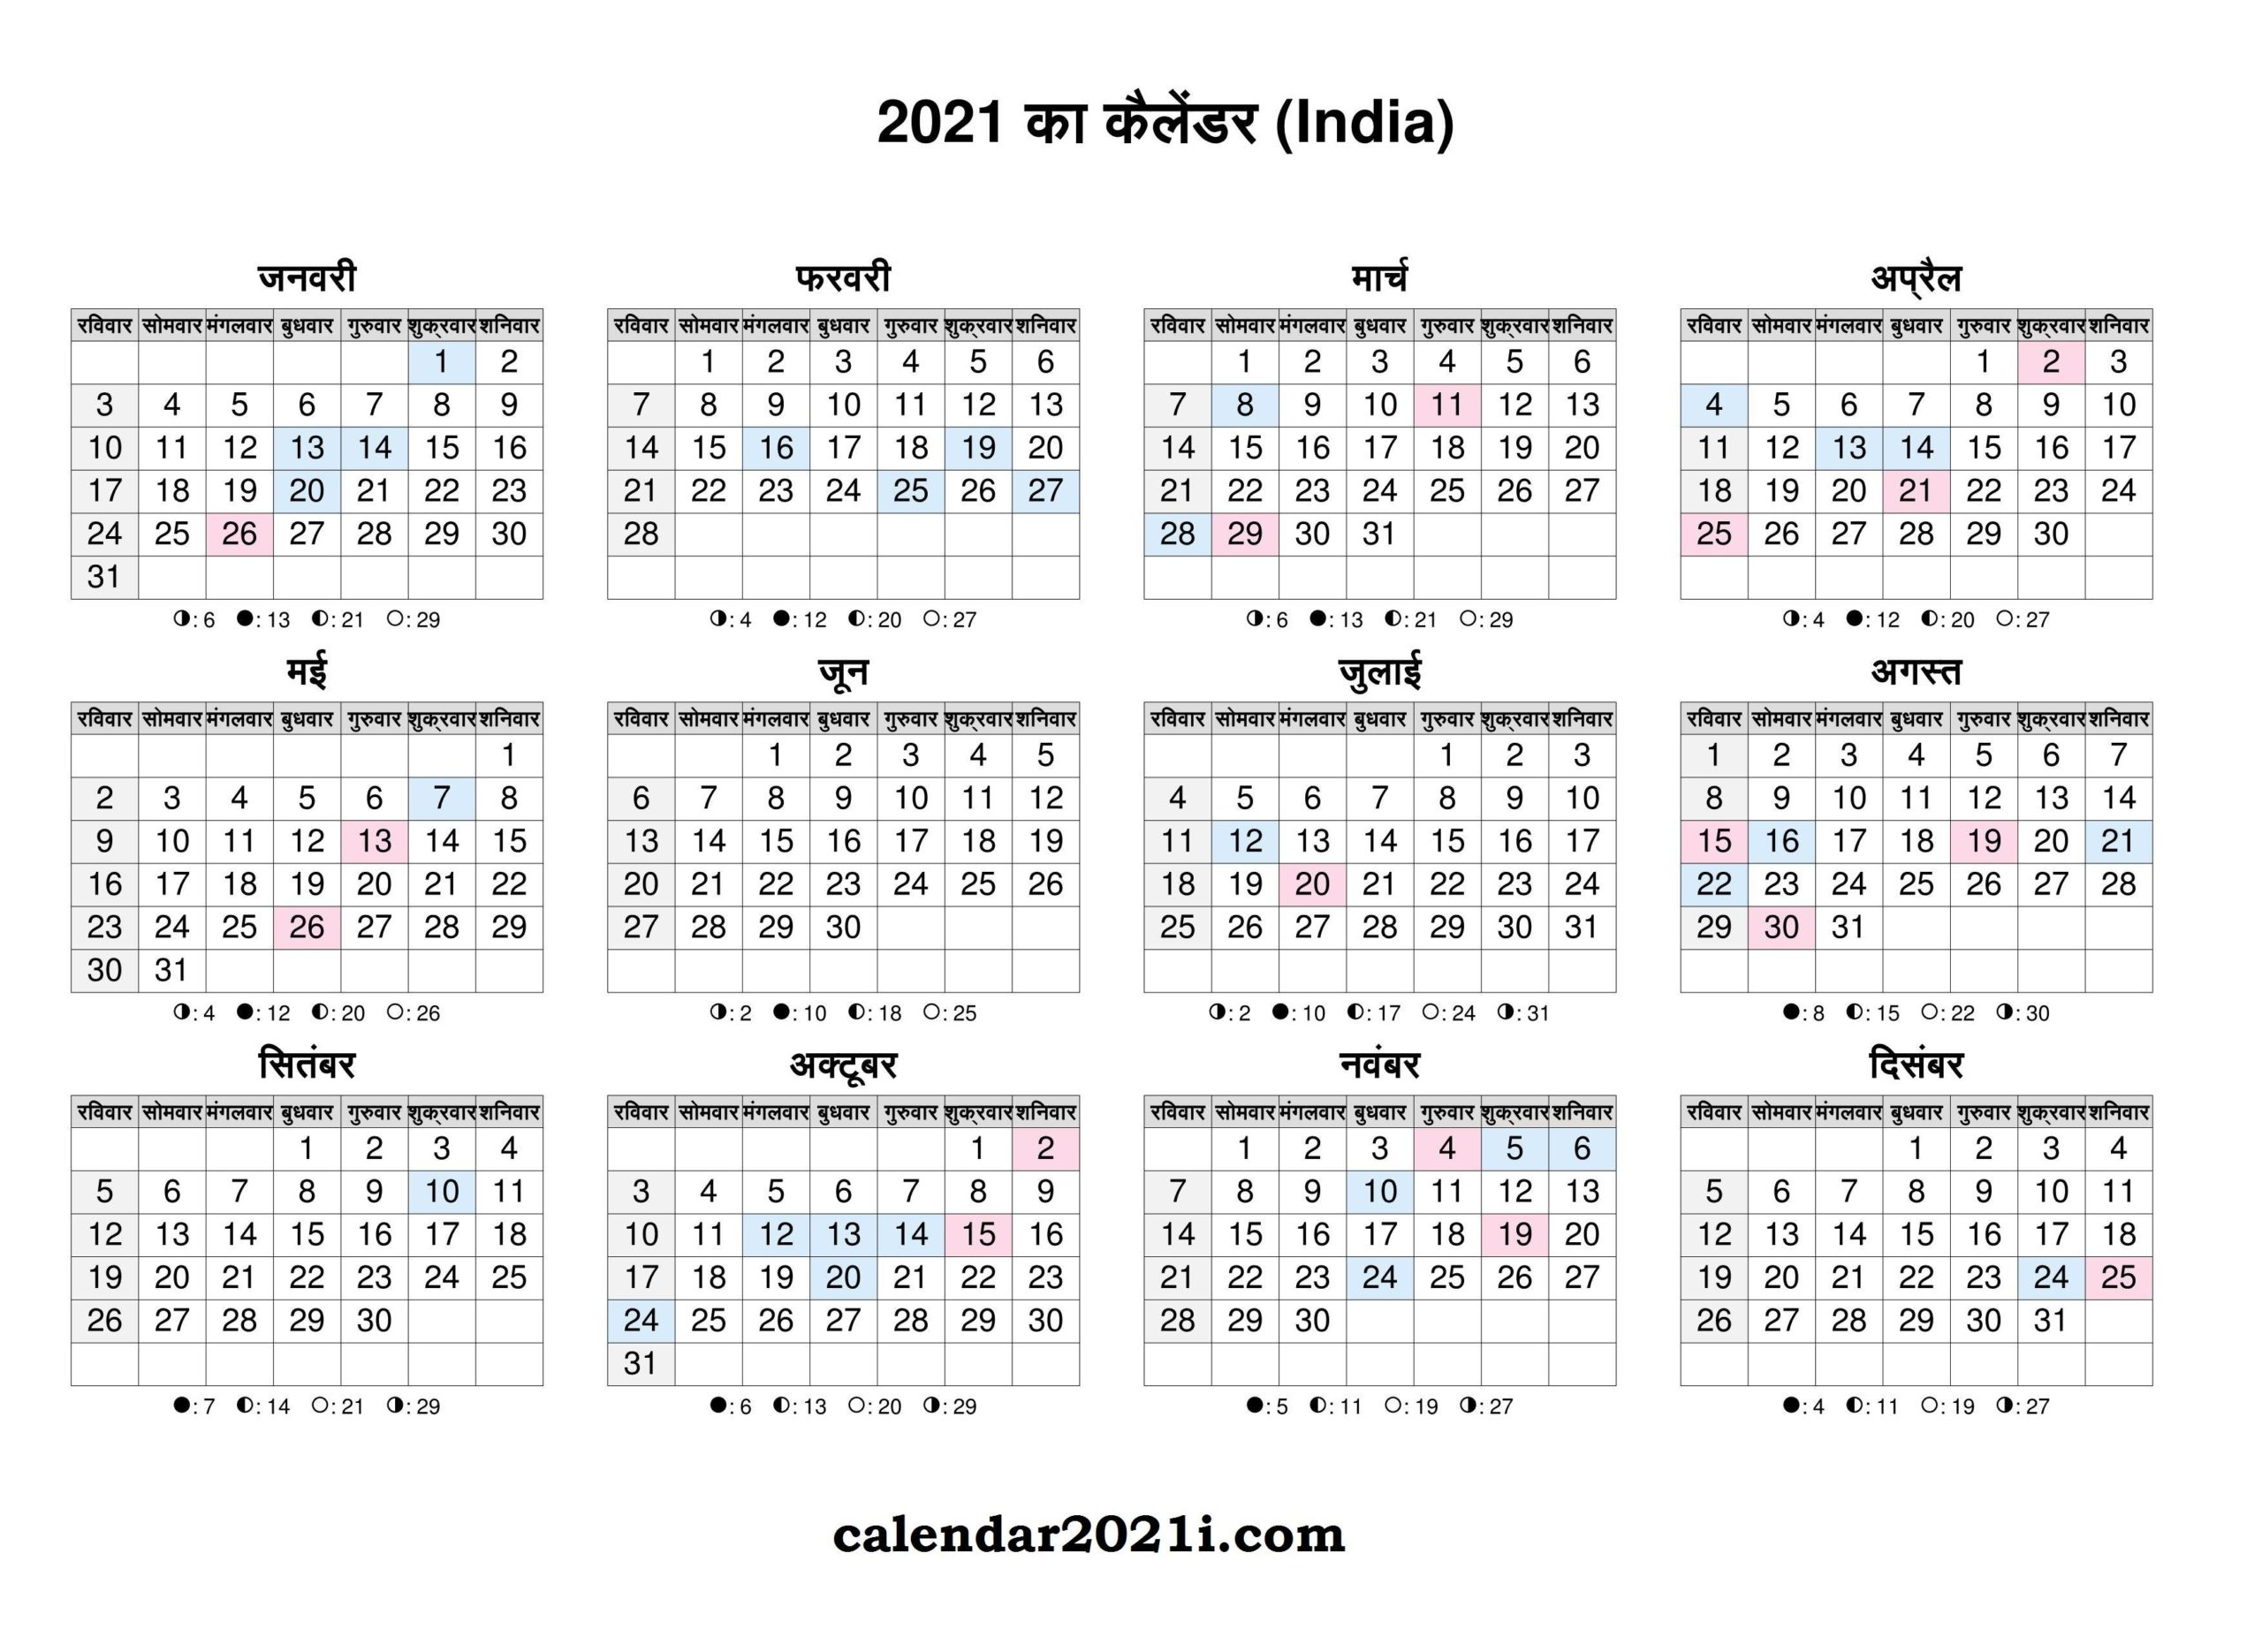 2021 India Calendar In Hindi With Holidays, Festivals